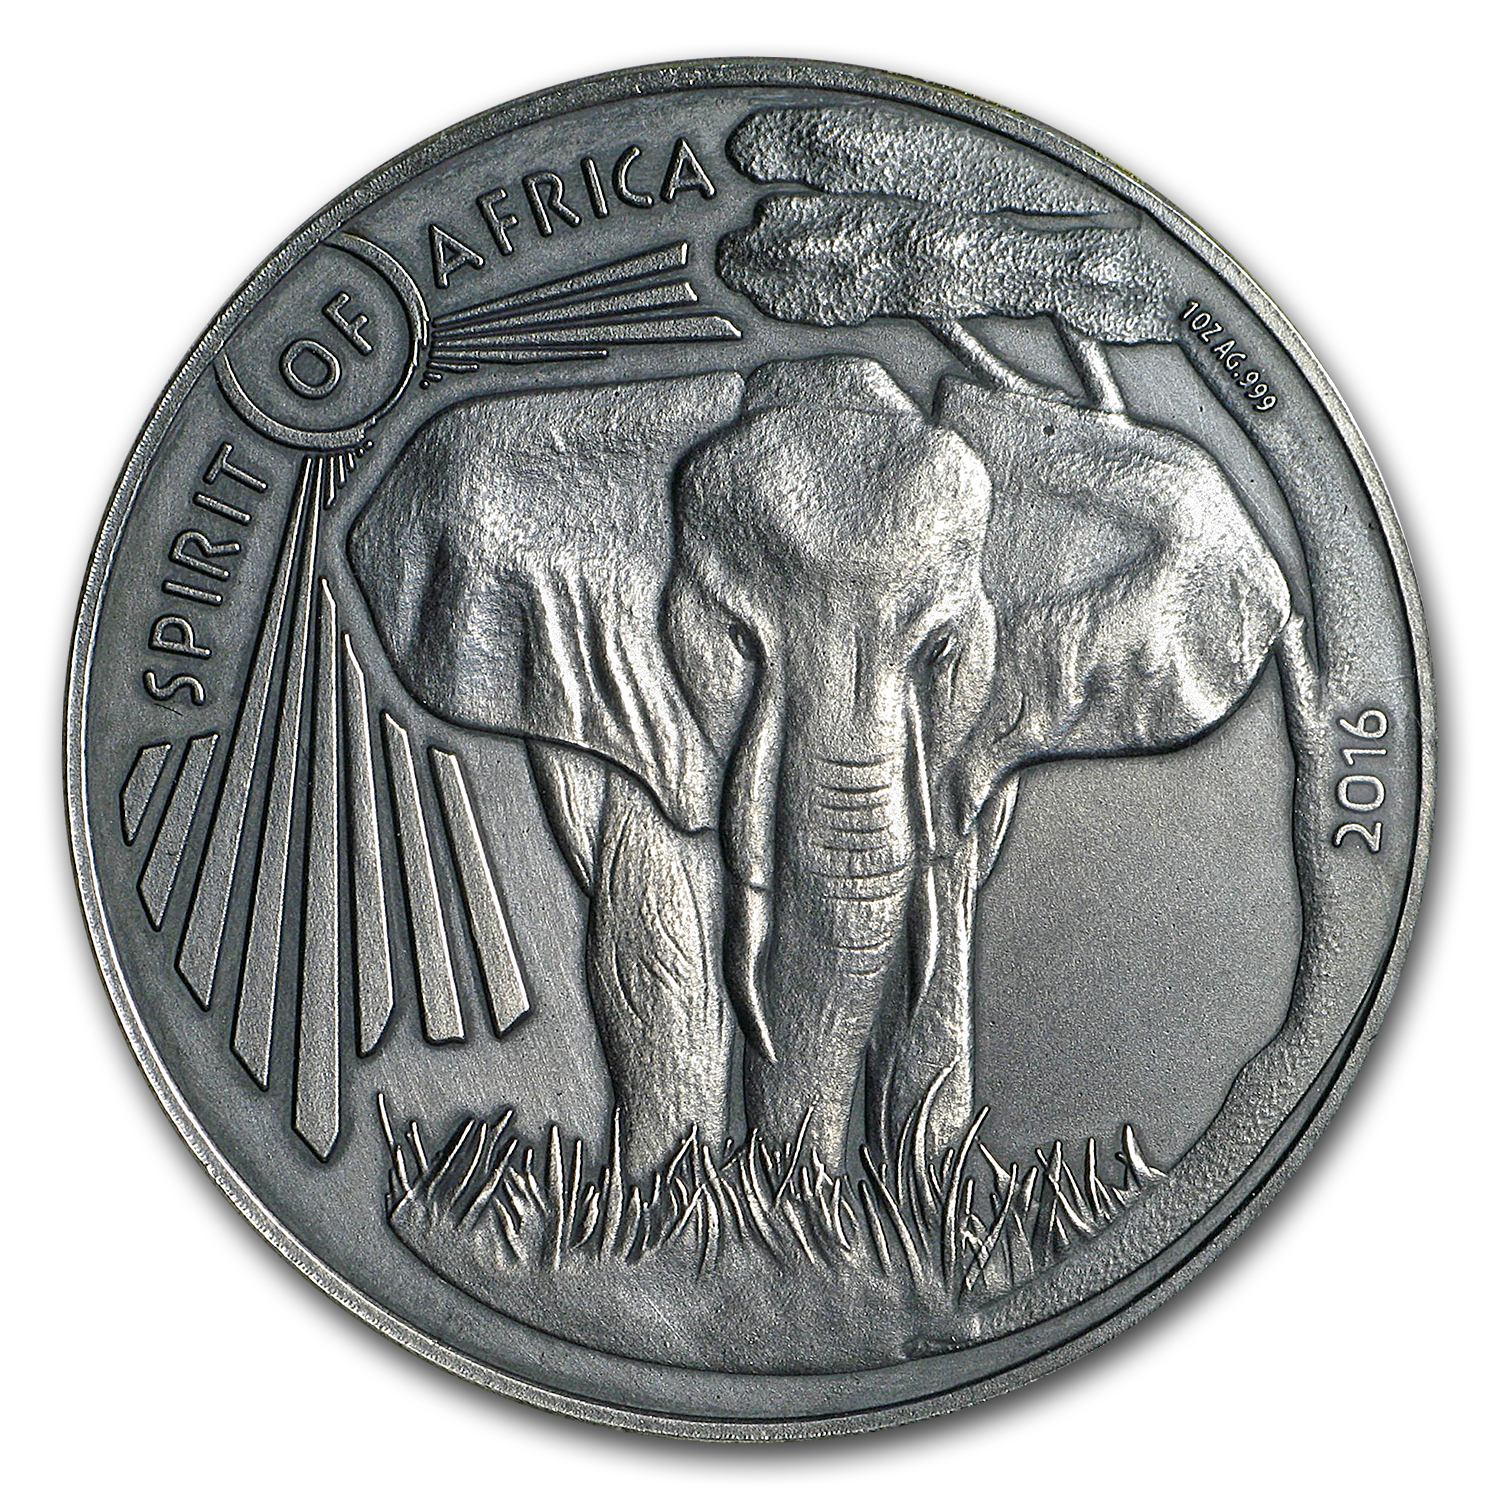 2016 Burkina Faso 1 oz Silver Spirit of Africa Elephant Series 5